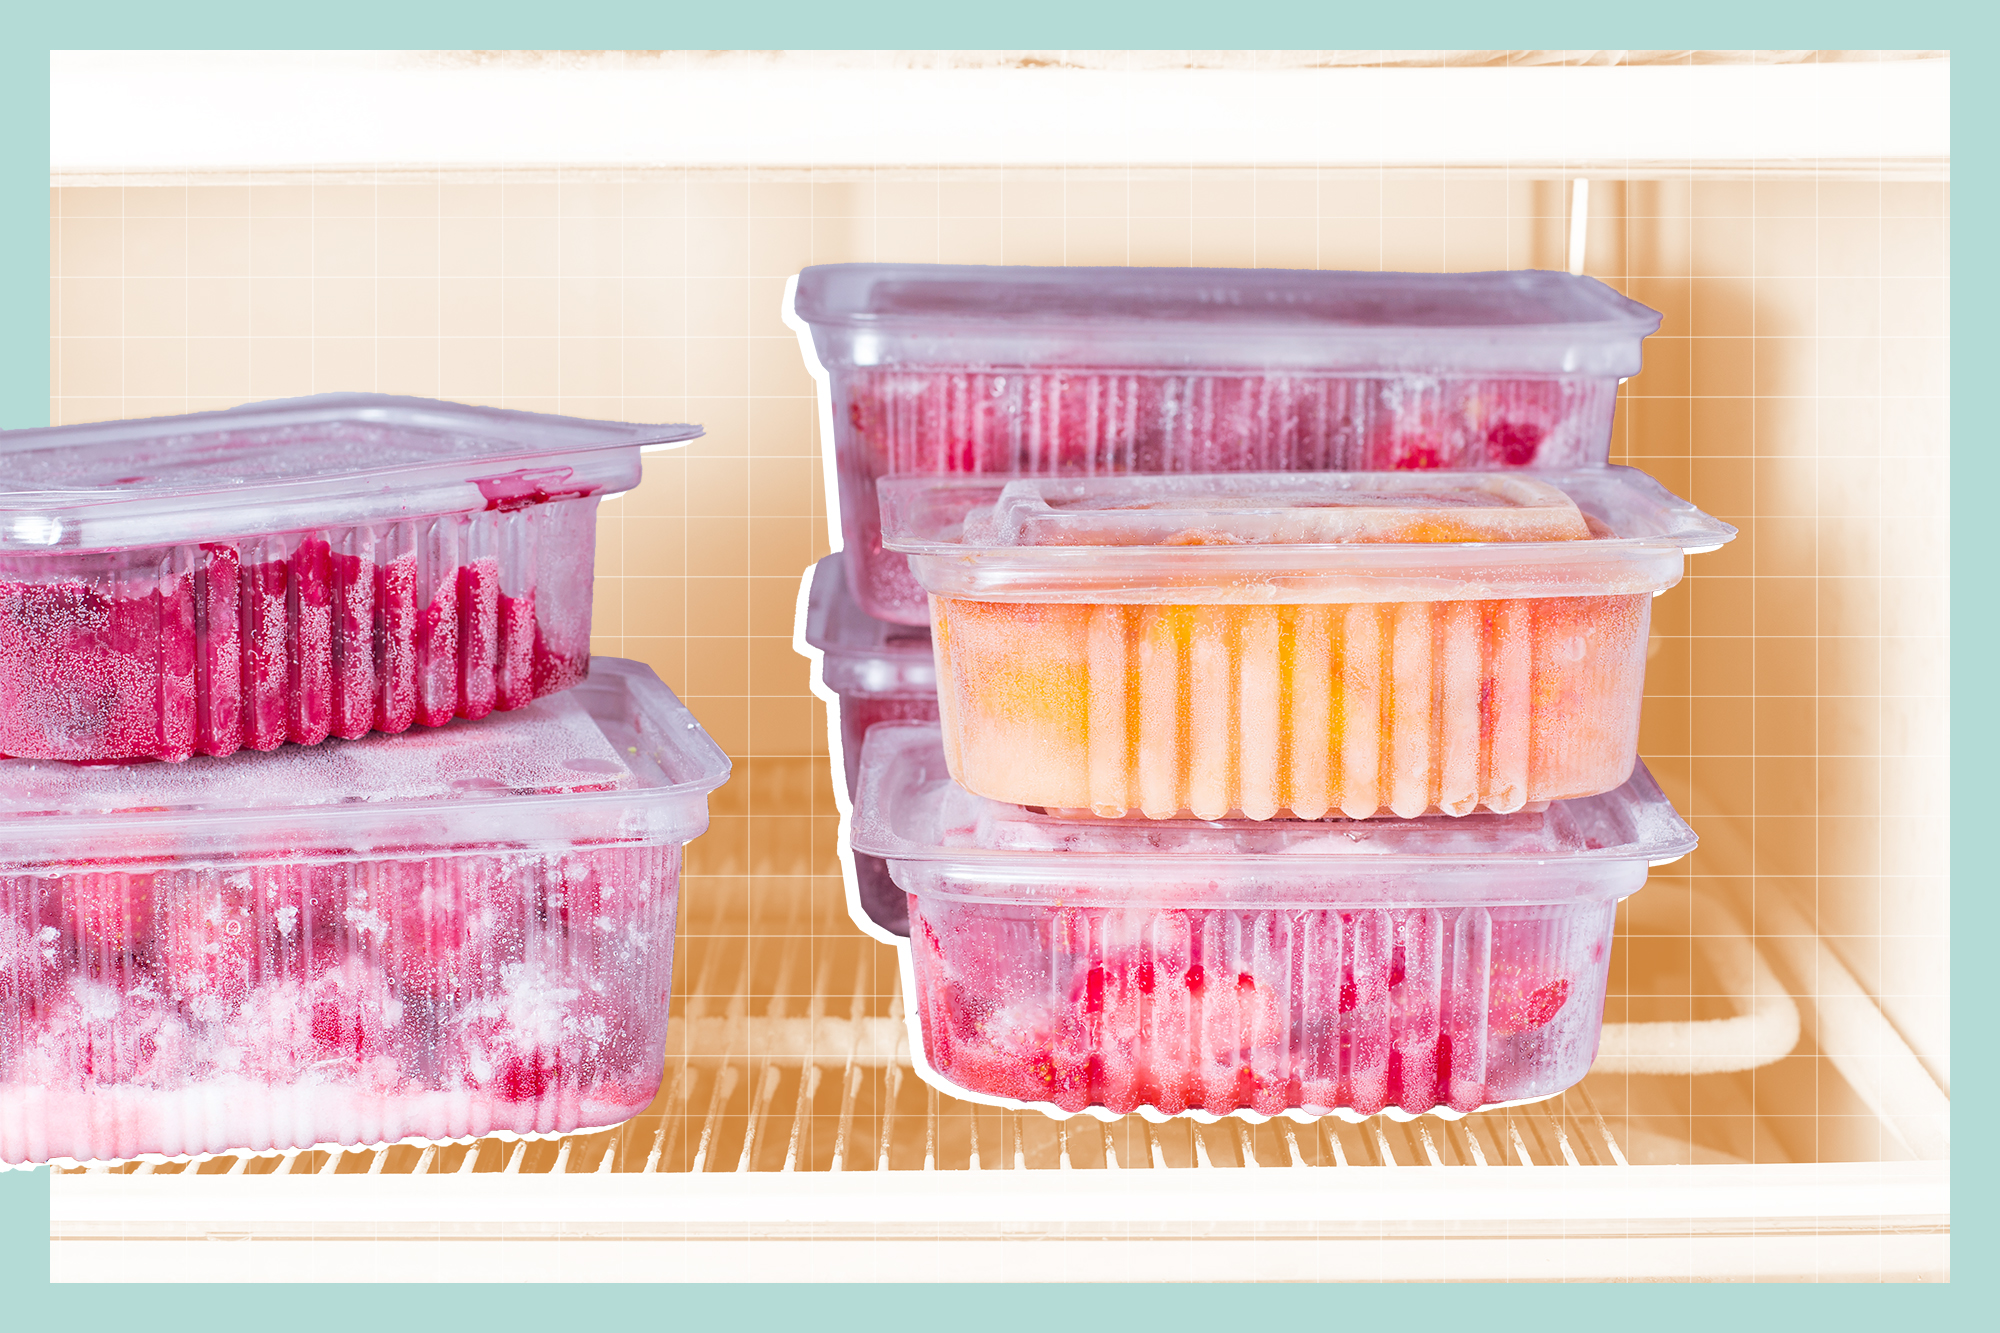 Frozen fruits and berries in a container in the freezer